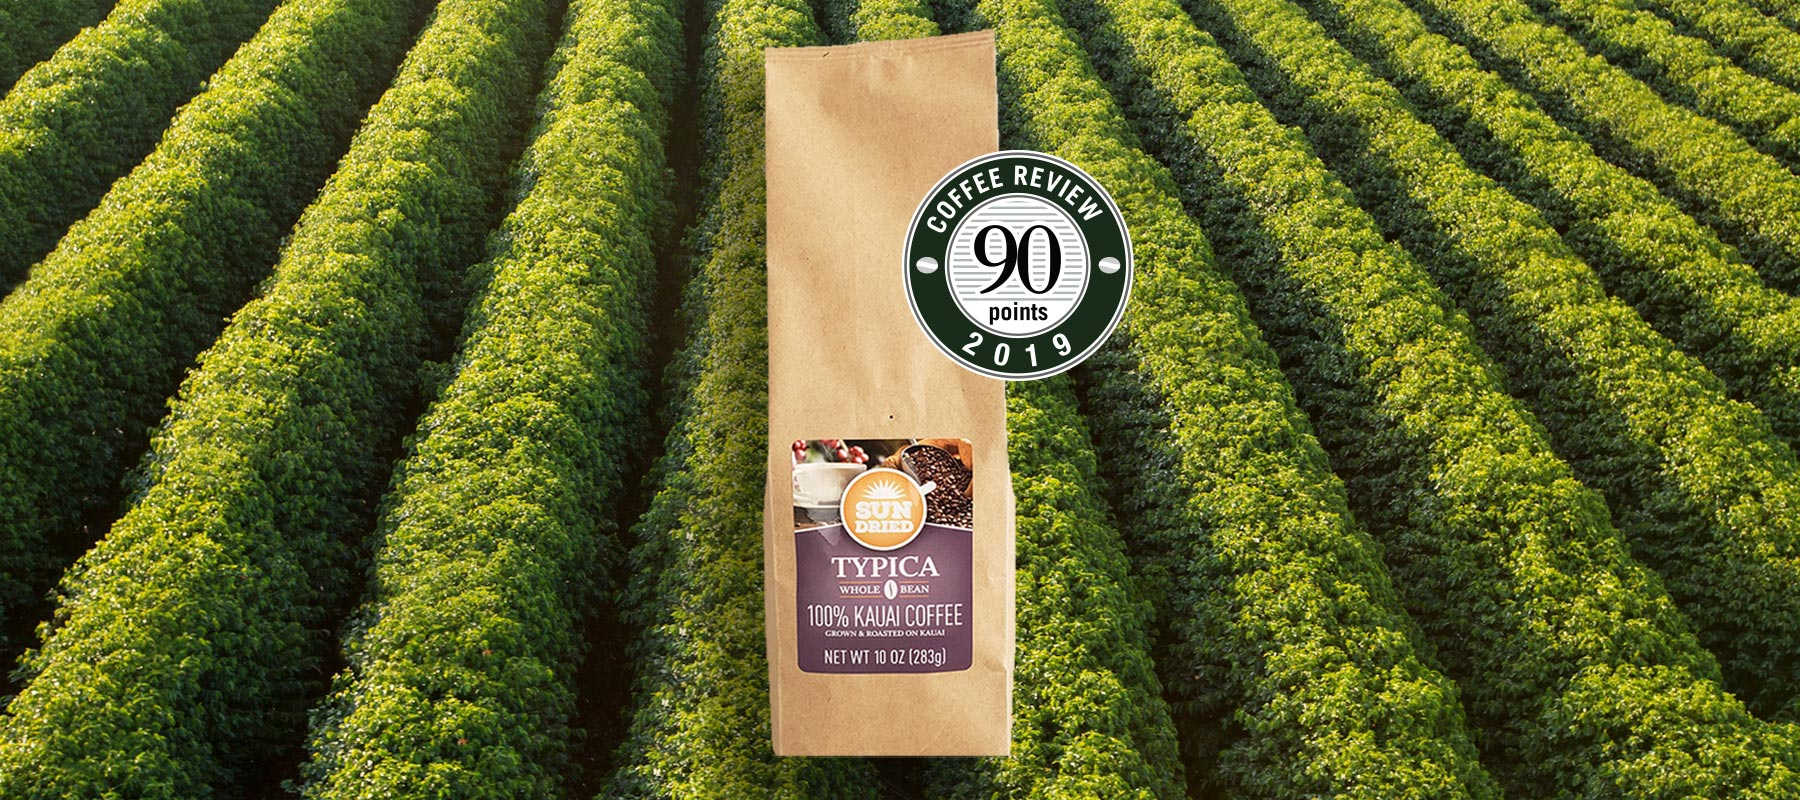 Sun Dried Typica Receives 90-Point Score from Coffee Review!